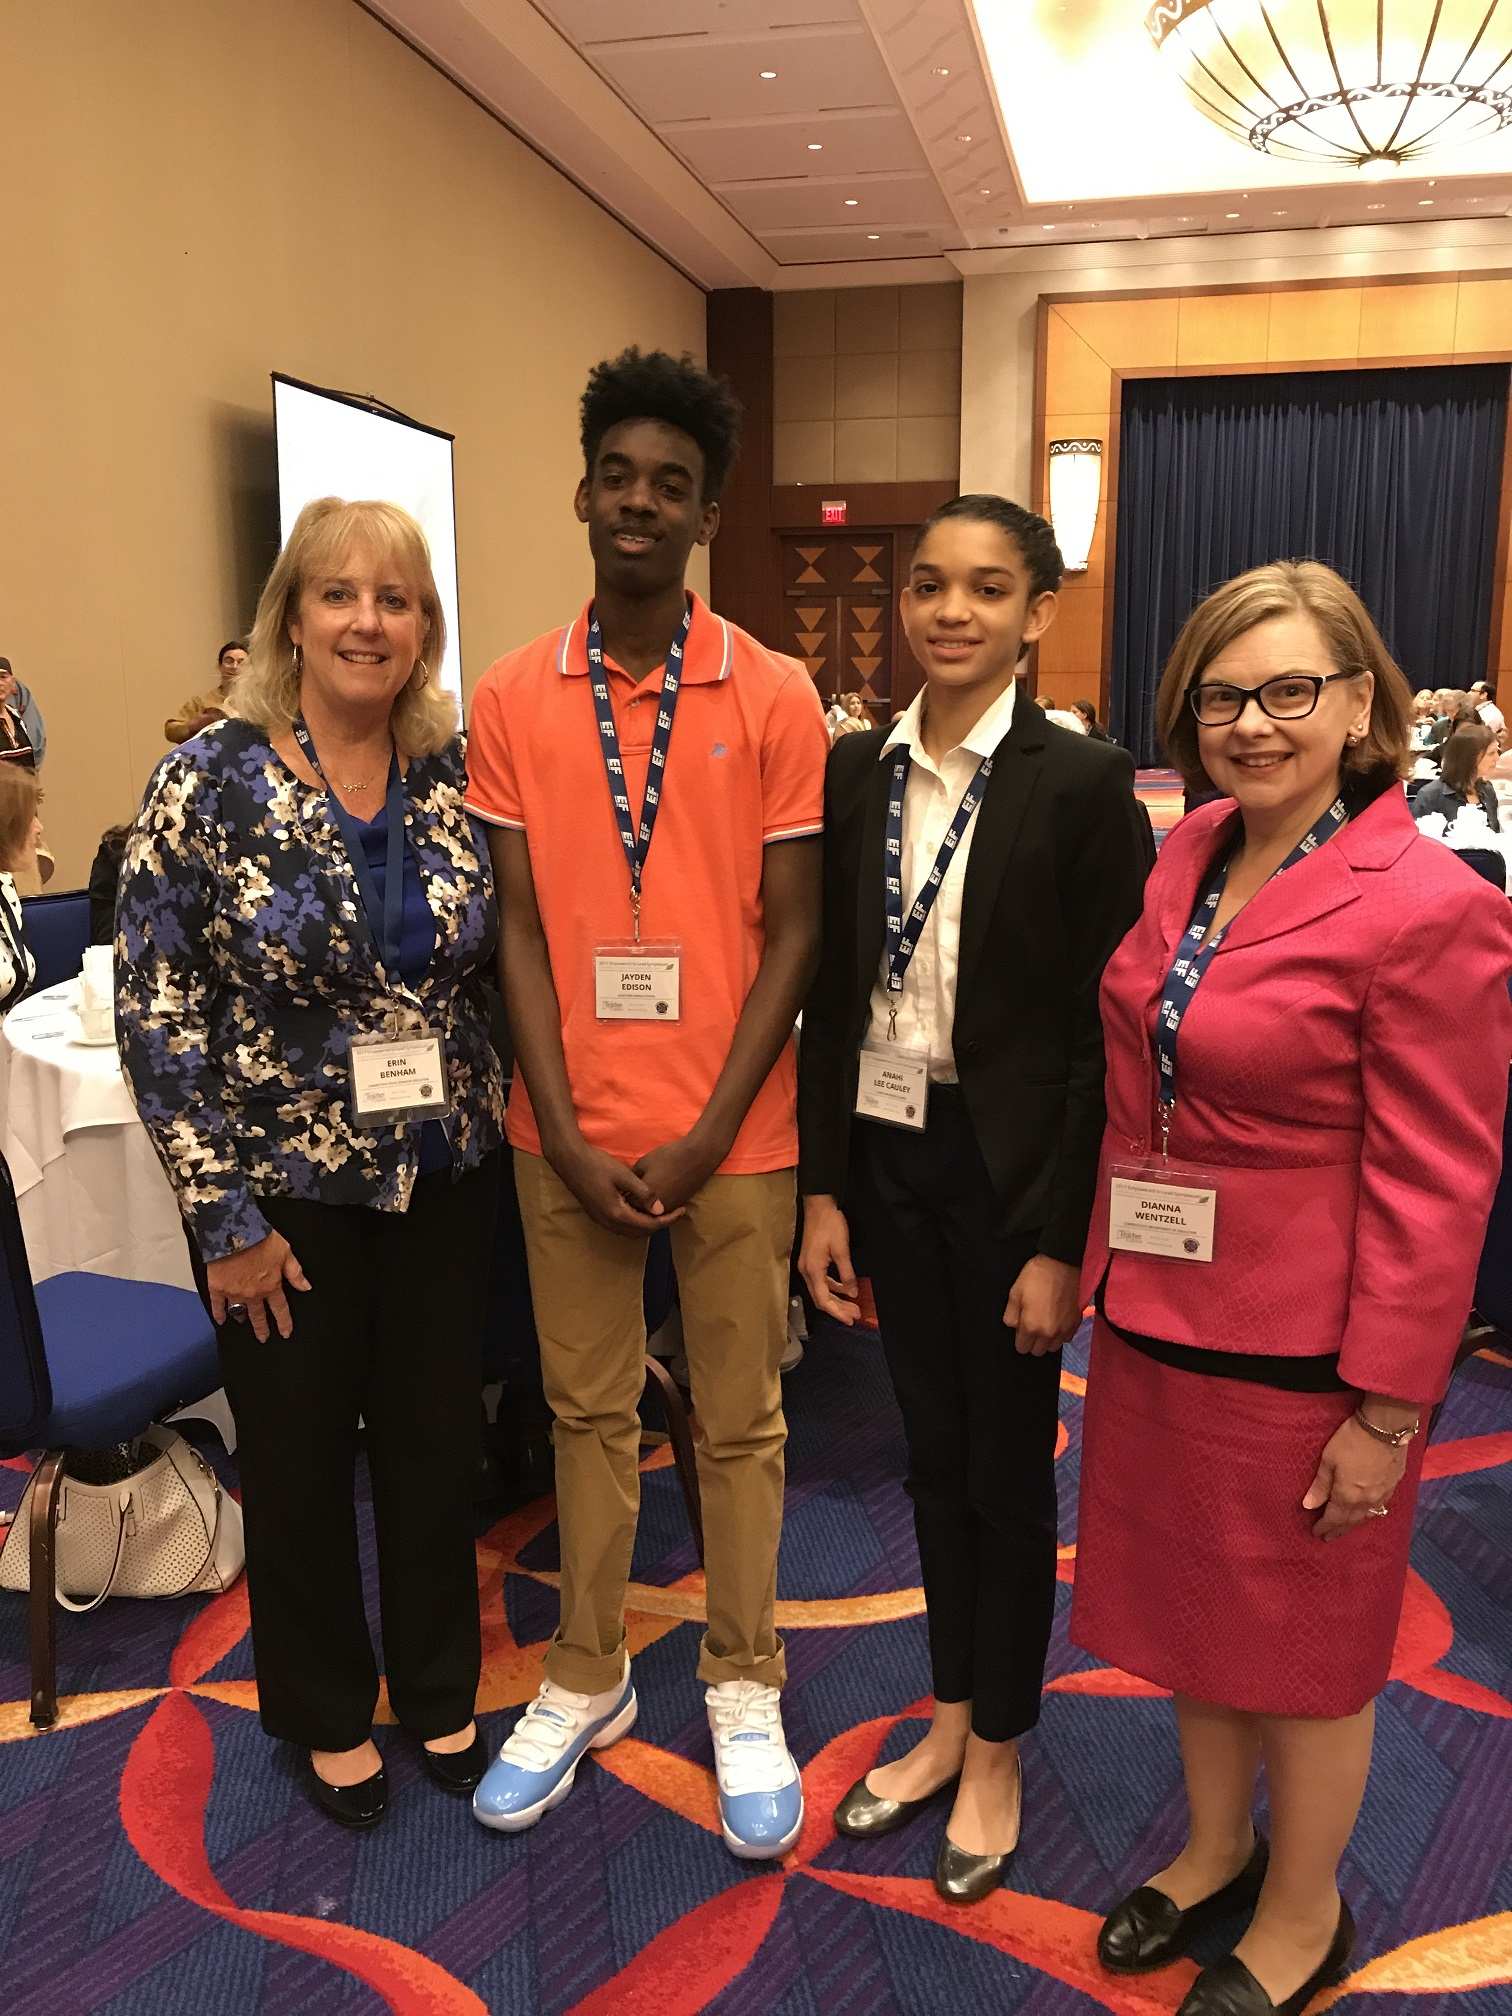 Sage Park Students Present at Empowered to Lead Symposium